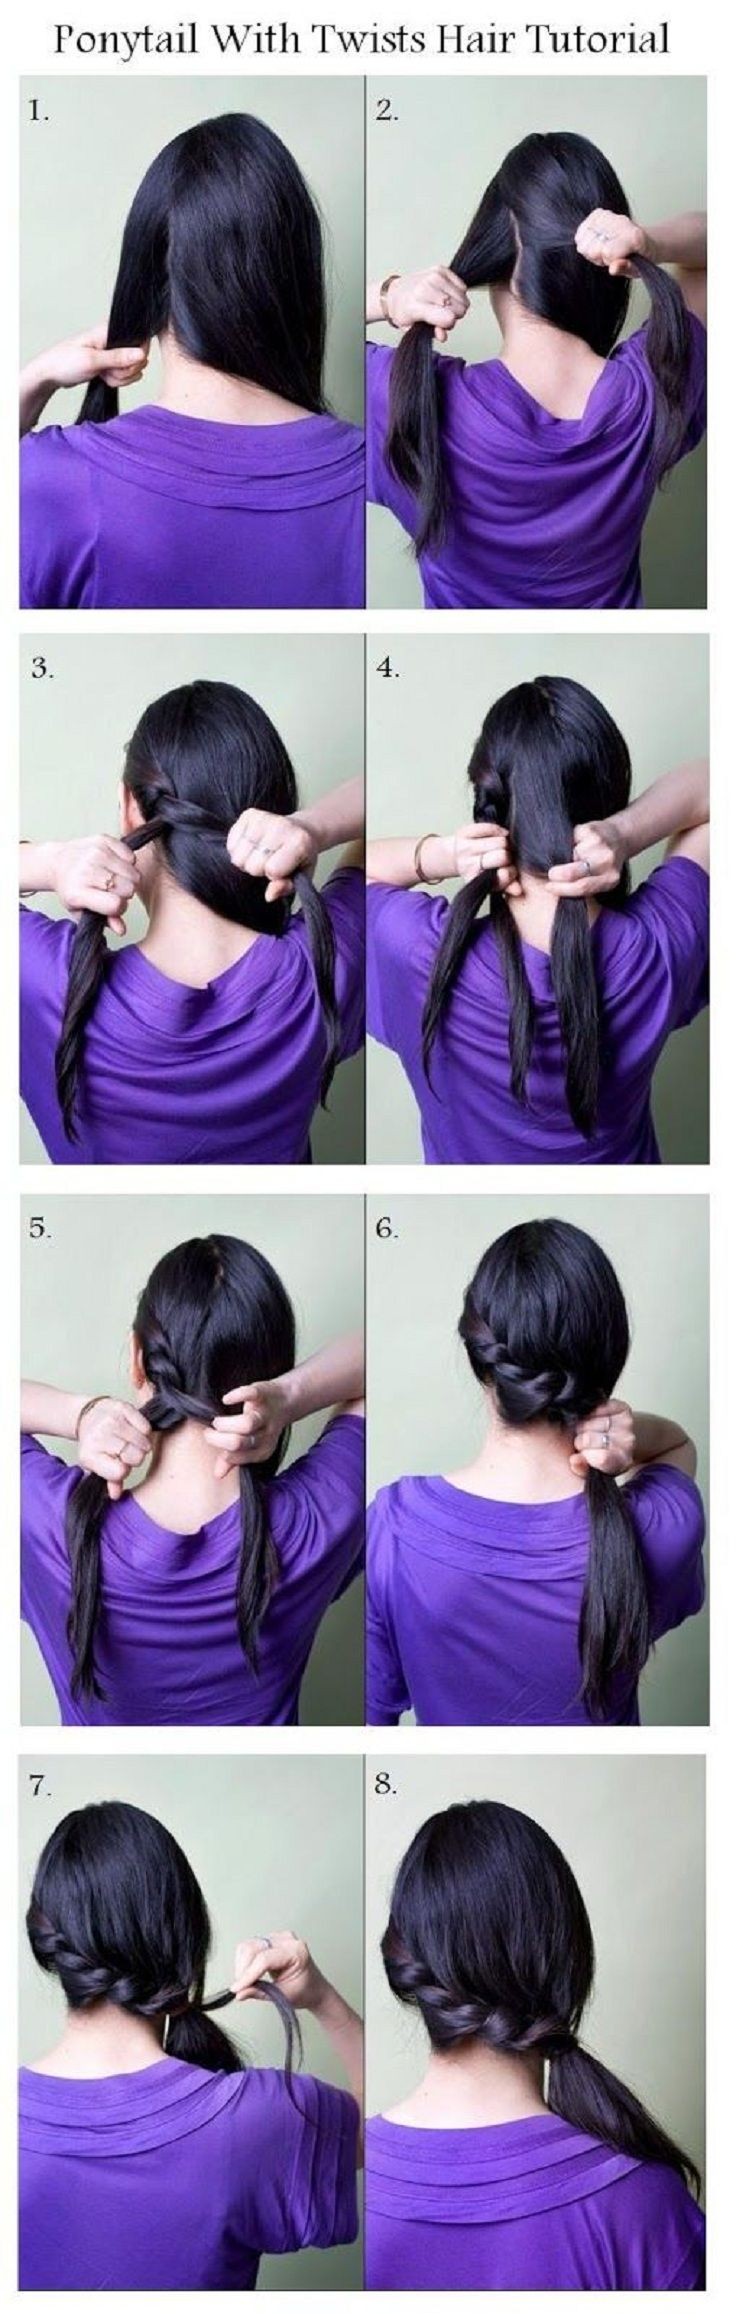 Braided ponytail on the side